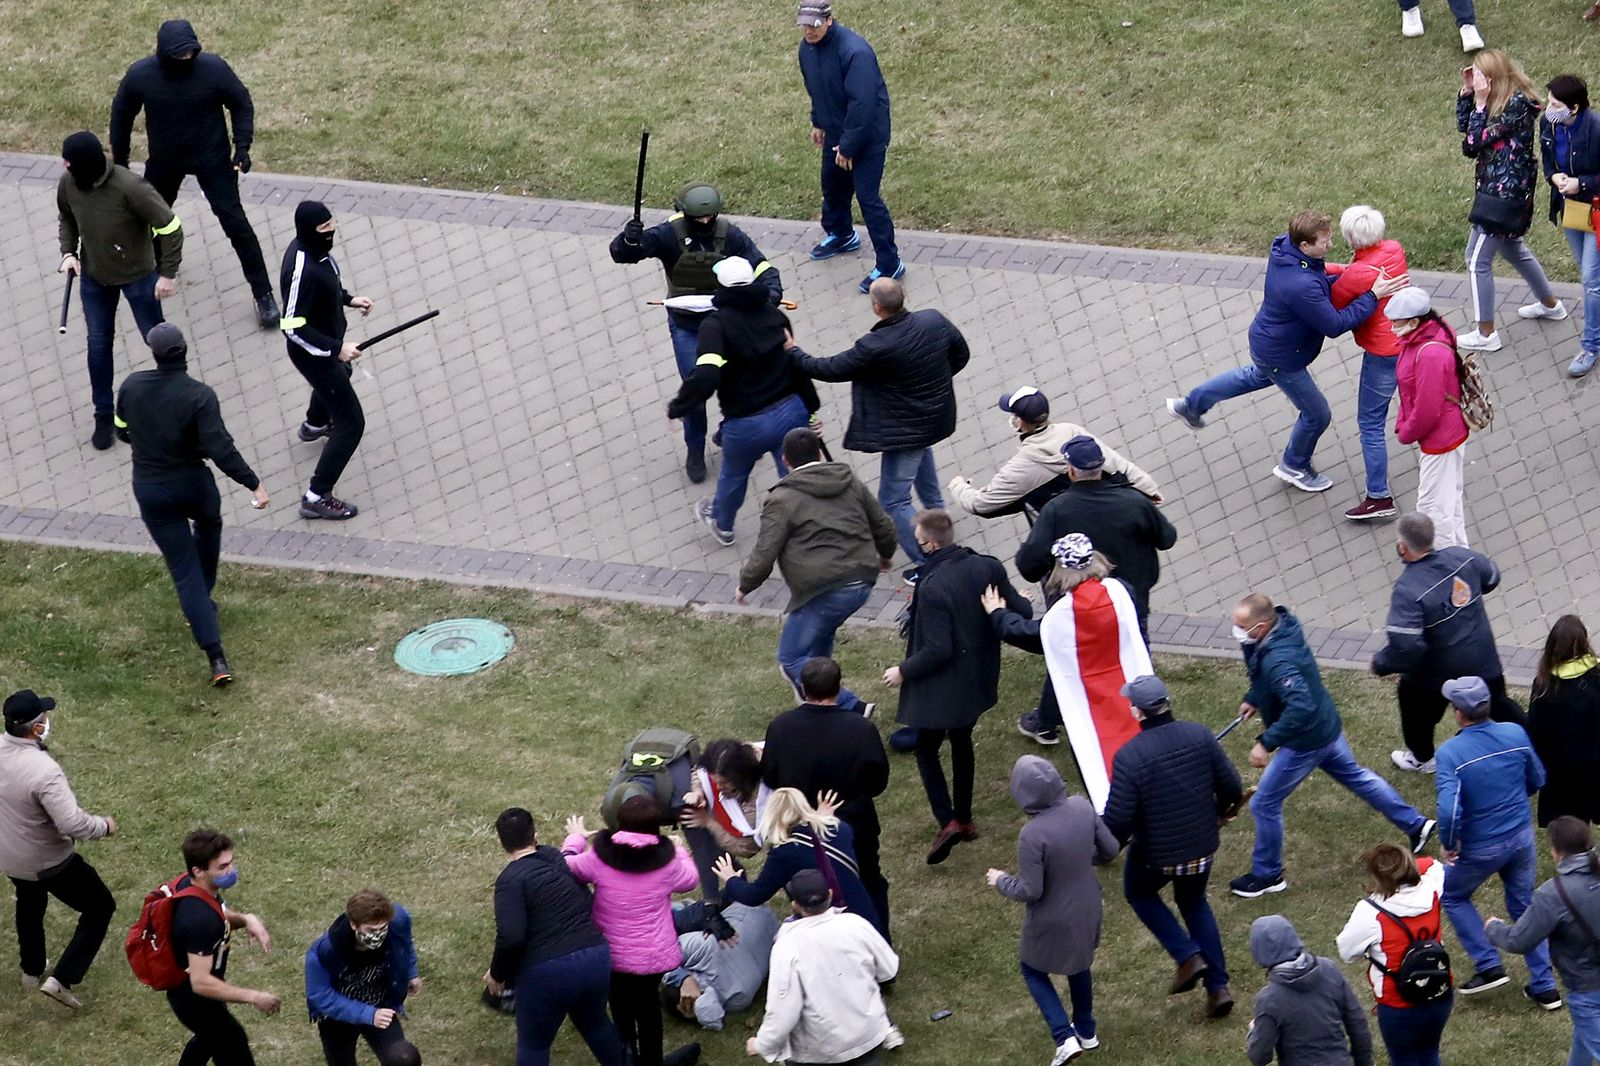 BELARUS-POLITICS-UNREST